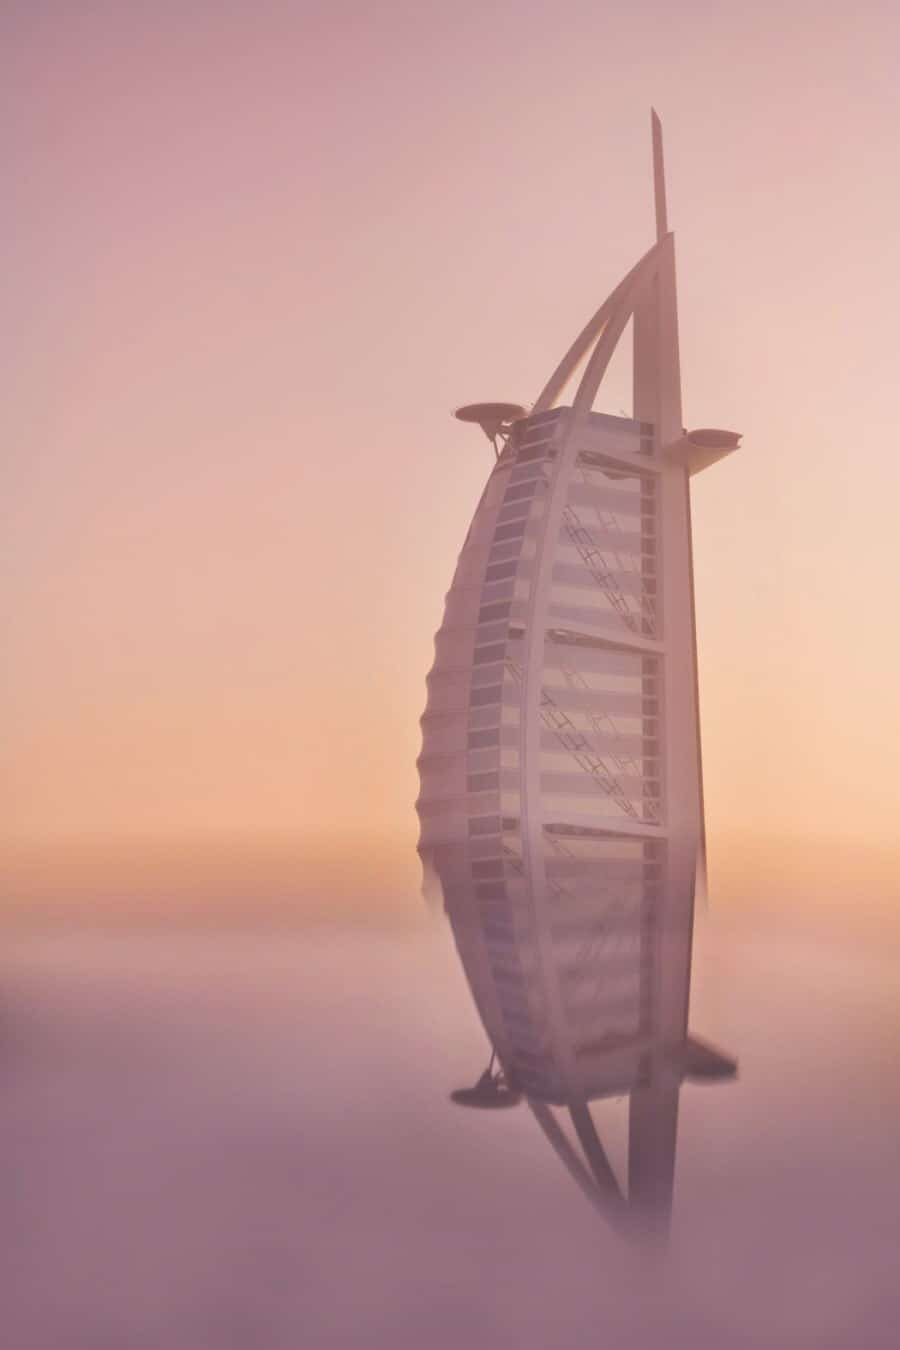 Creating Reflections - Burj al Arab, Dubai